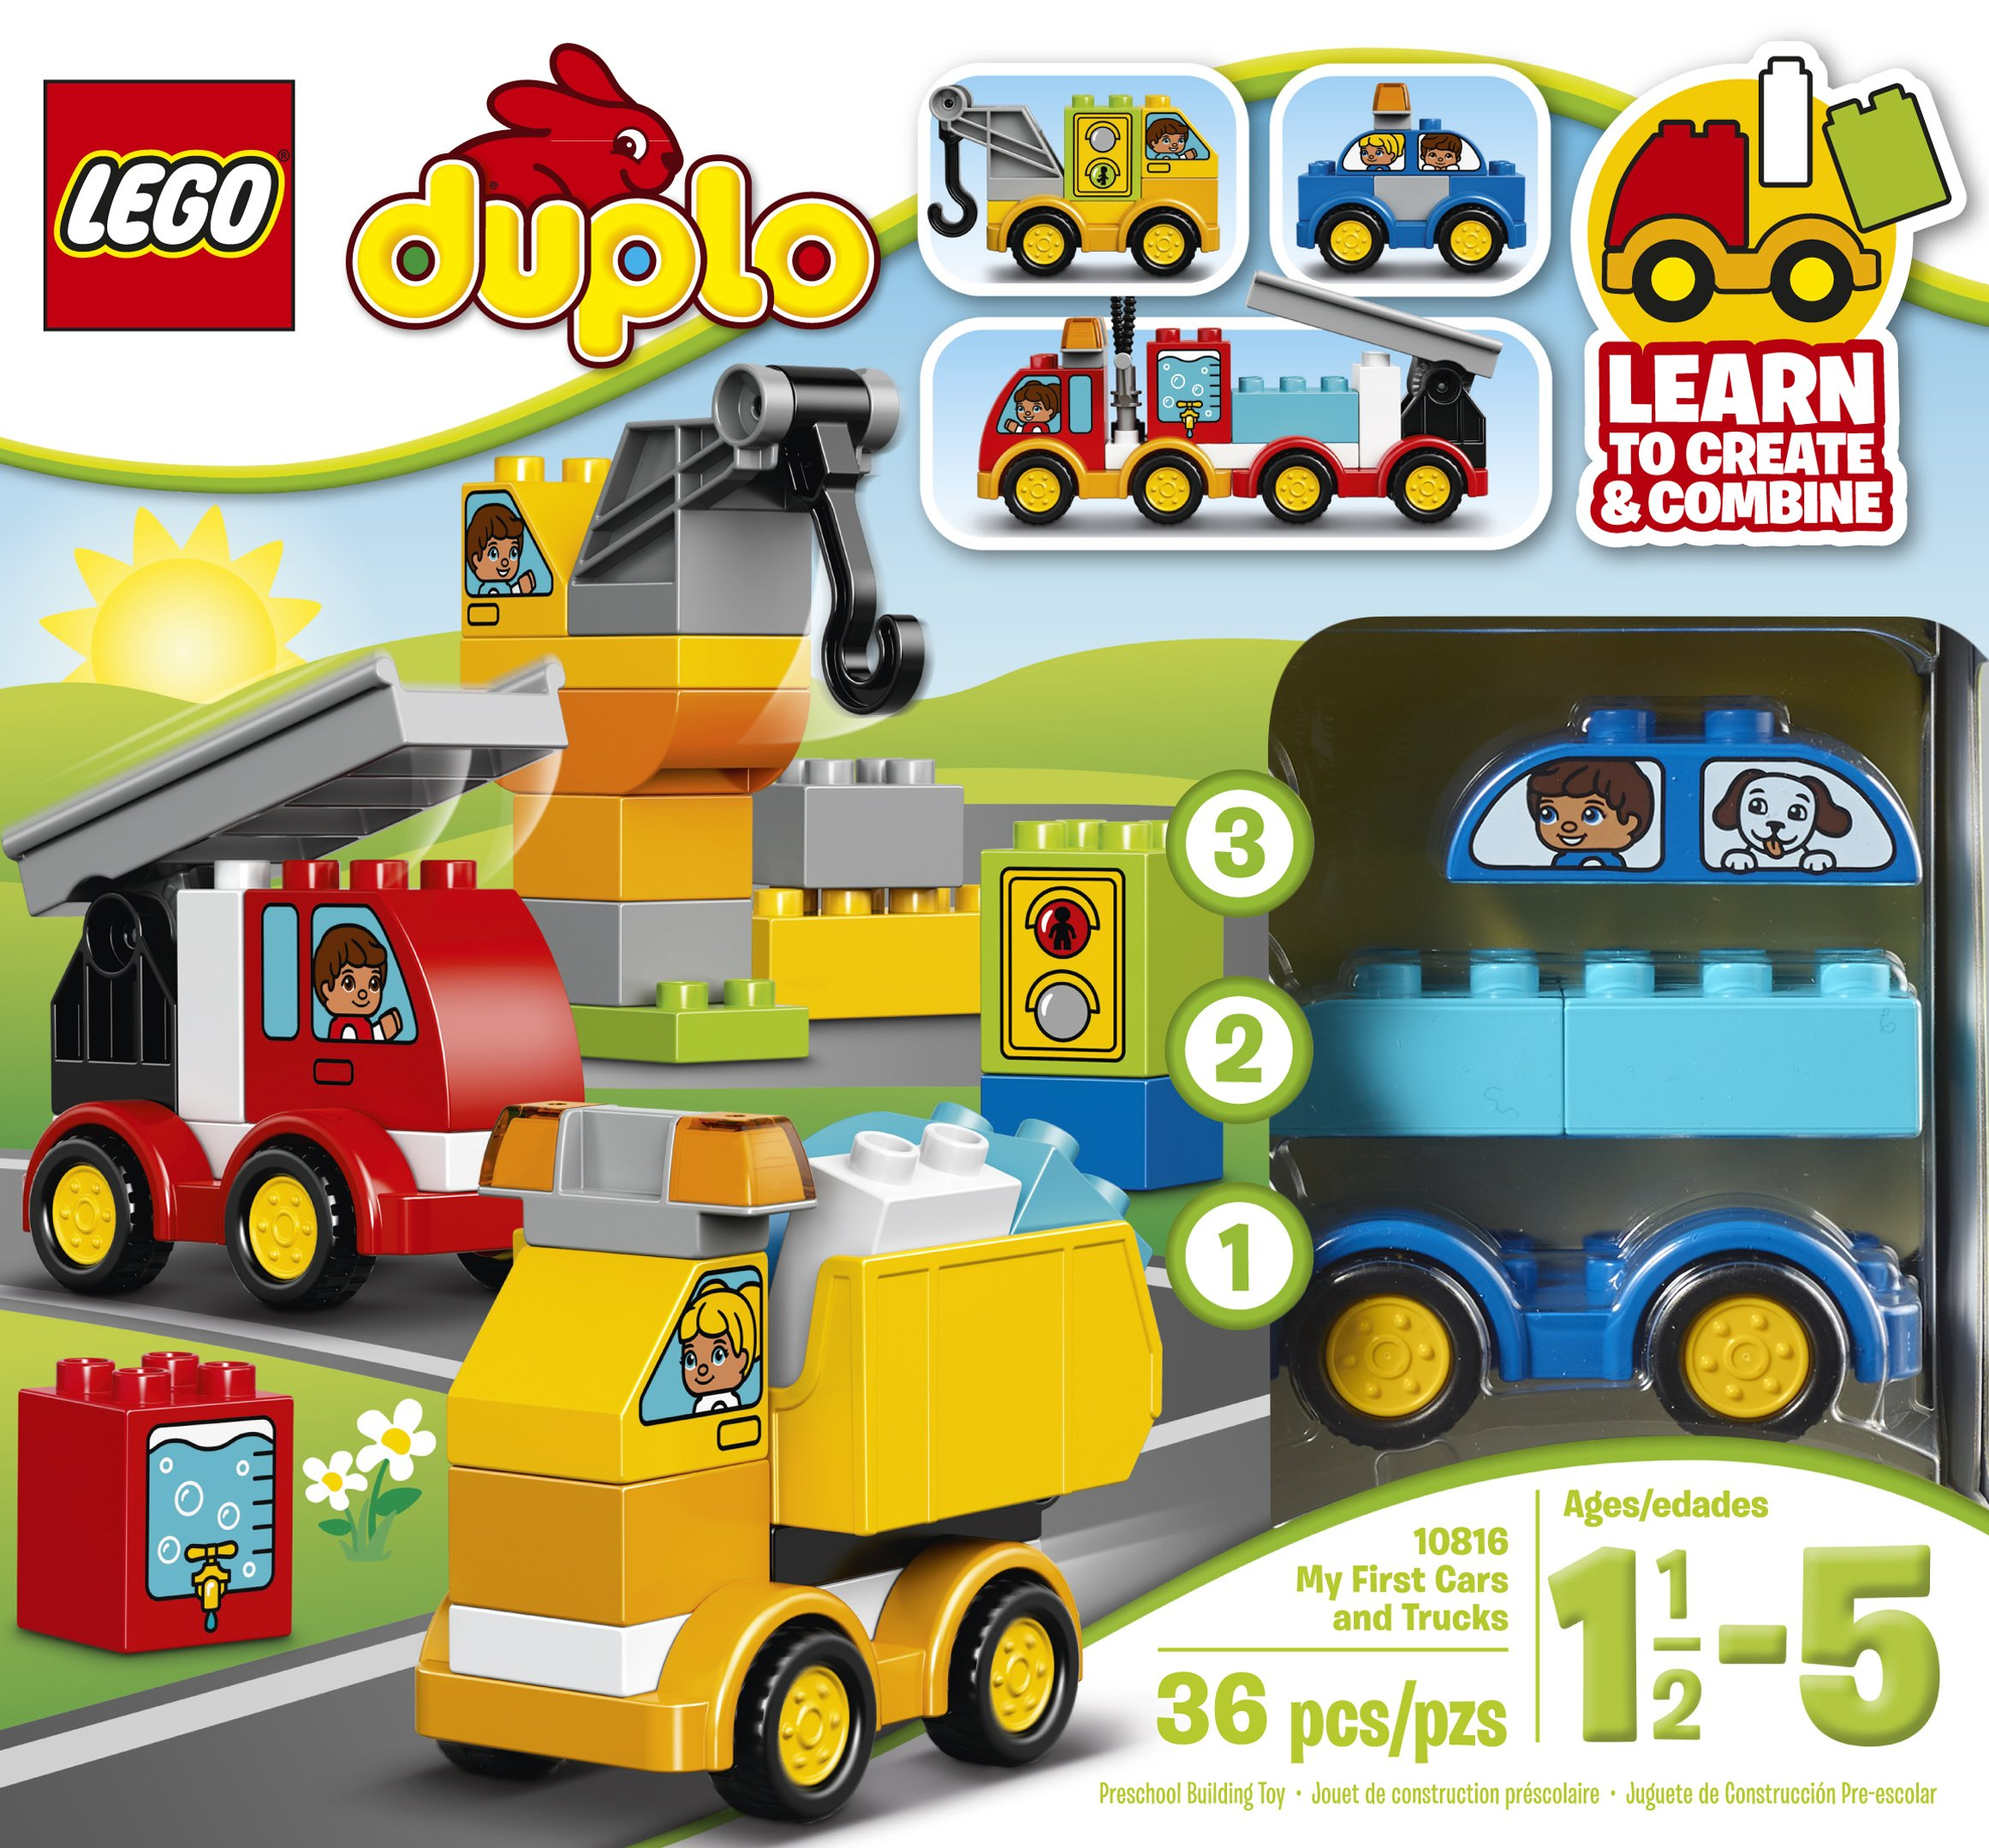 Lego Duplo My First Cars And Trucks 10816 Toy For 1 5 5 Year Olds